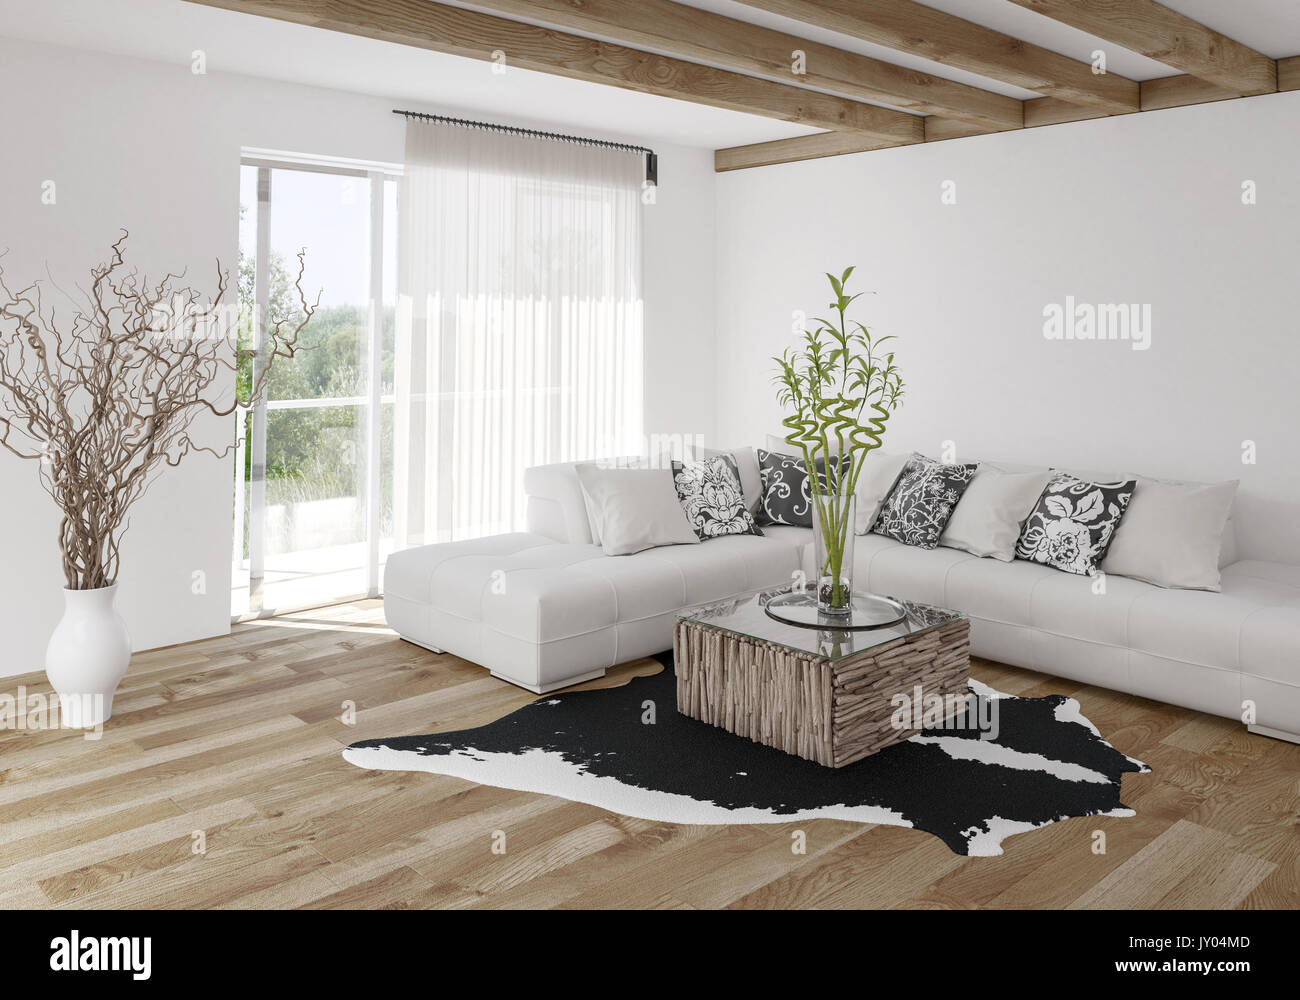 Modern airy bright stylish living room with wooden beams and light ...